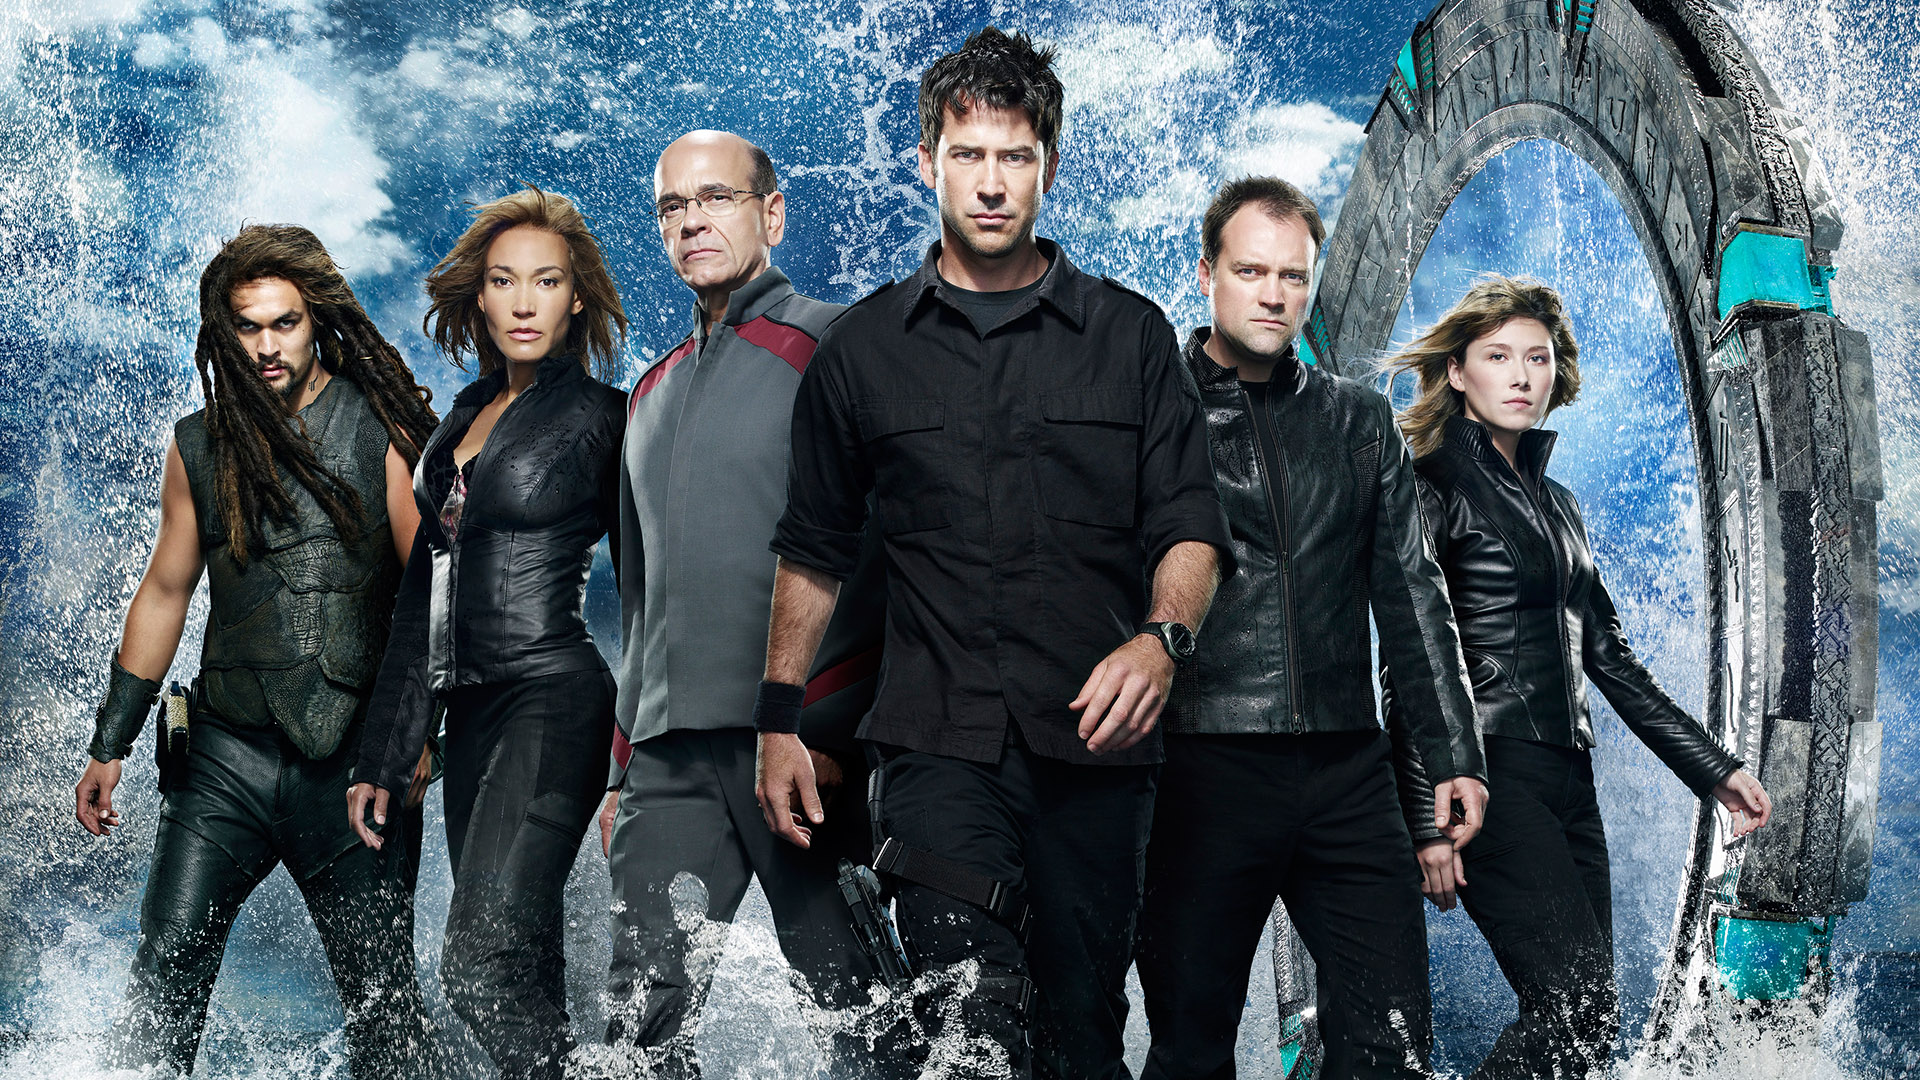 Stargate Atlantis wallpaper 9